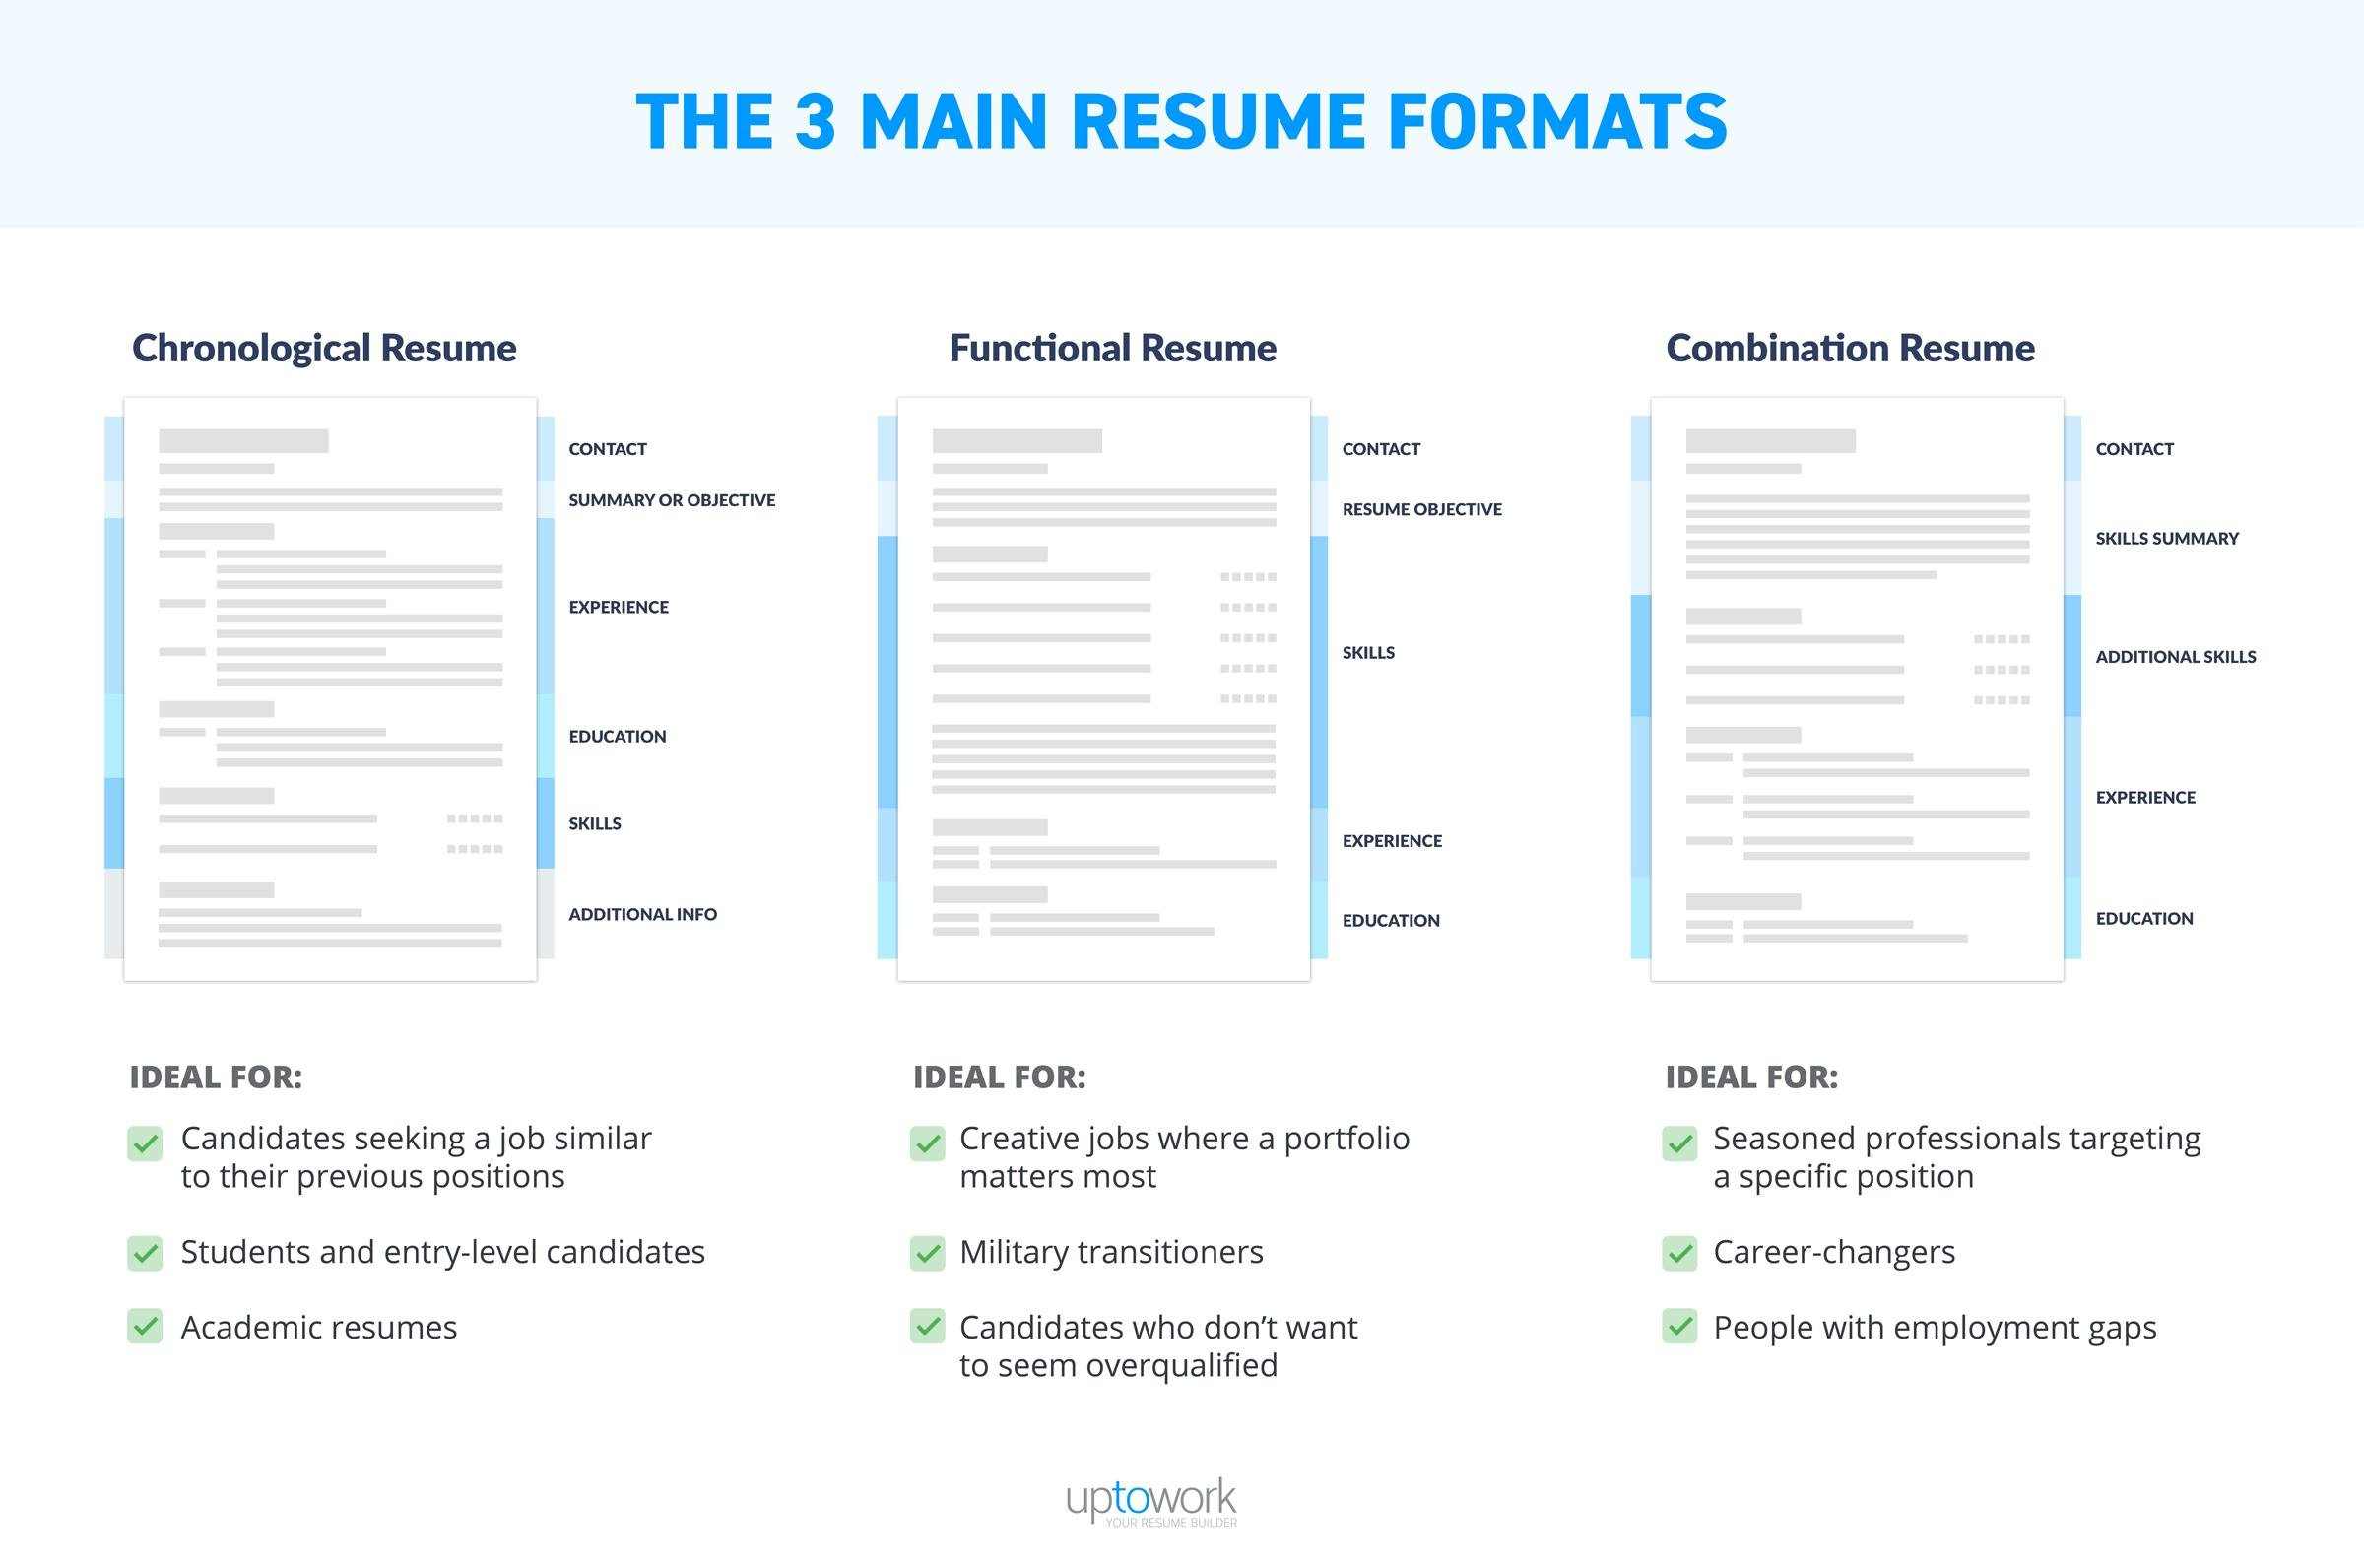 Resume Formats: Chronological, Functional, Combination